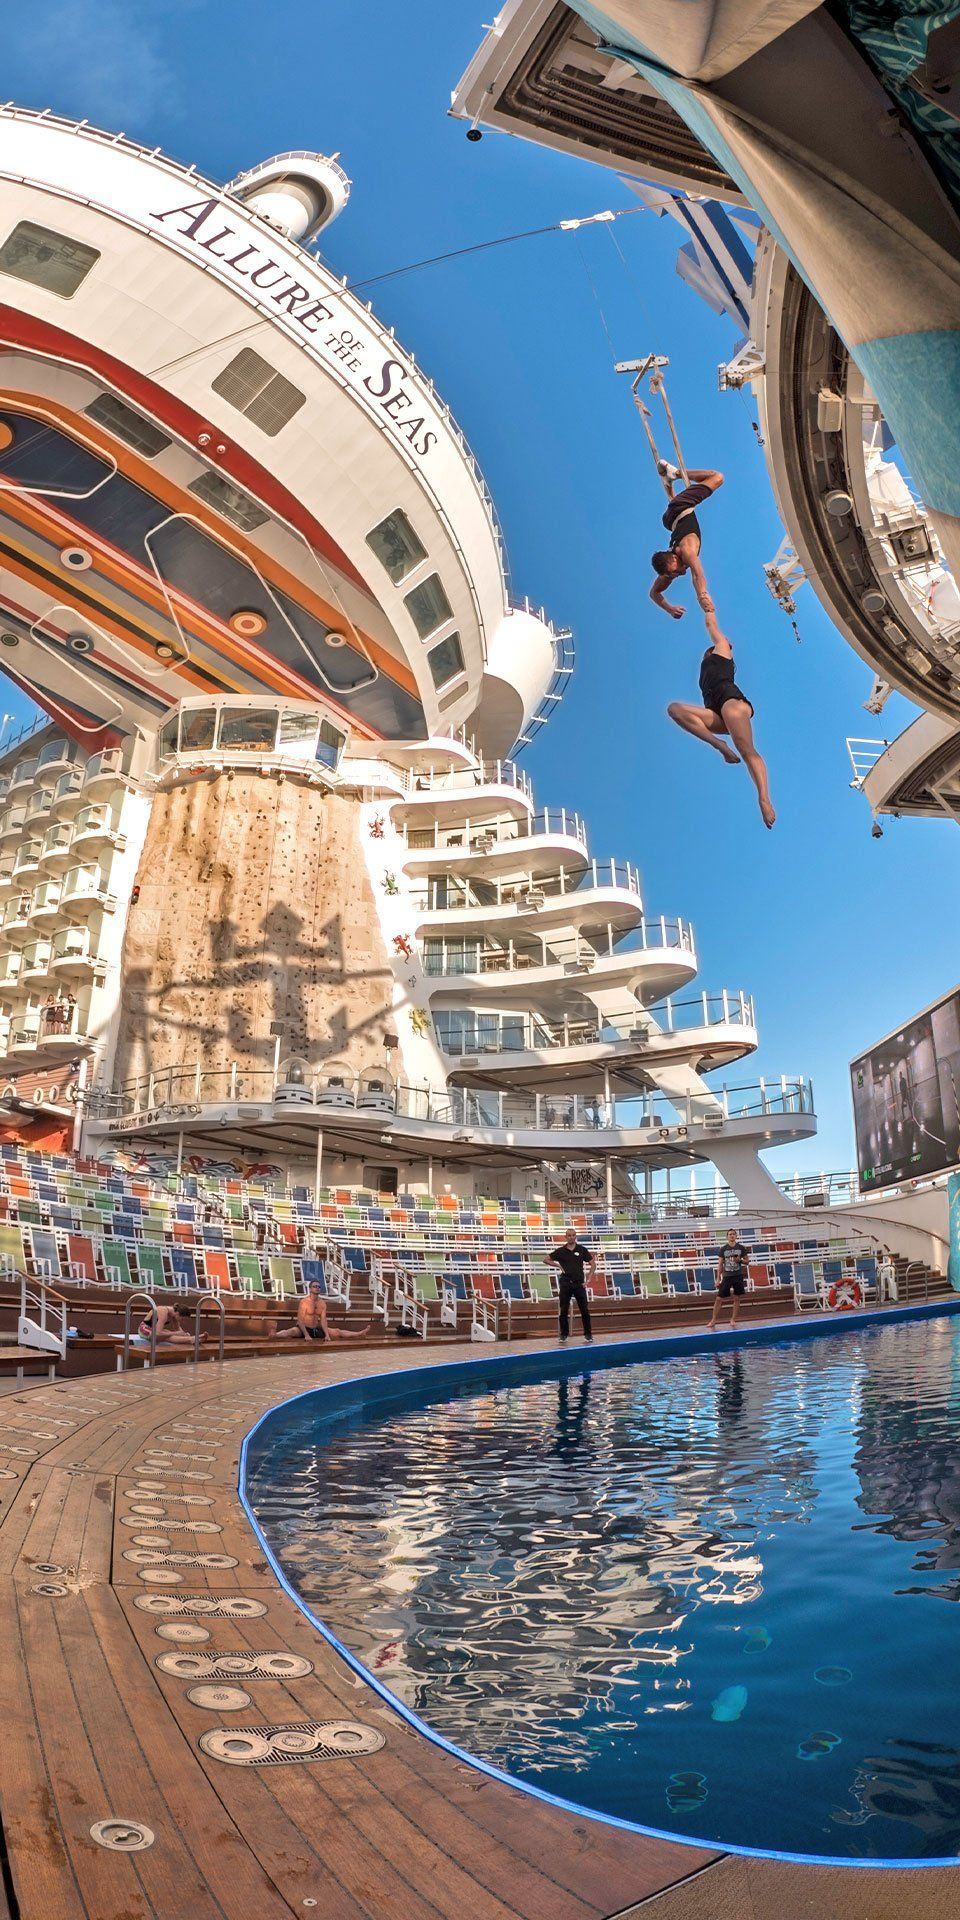 Allure Of The Seas Forget Same Old Poolside Lounging Allure Of The Seas Takes Thrills To New Lev Cruise Vacation Cruise Ships Interior Cruise Ship Pictures